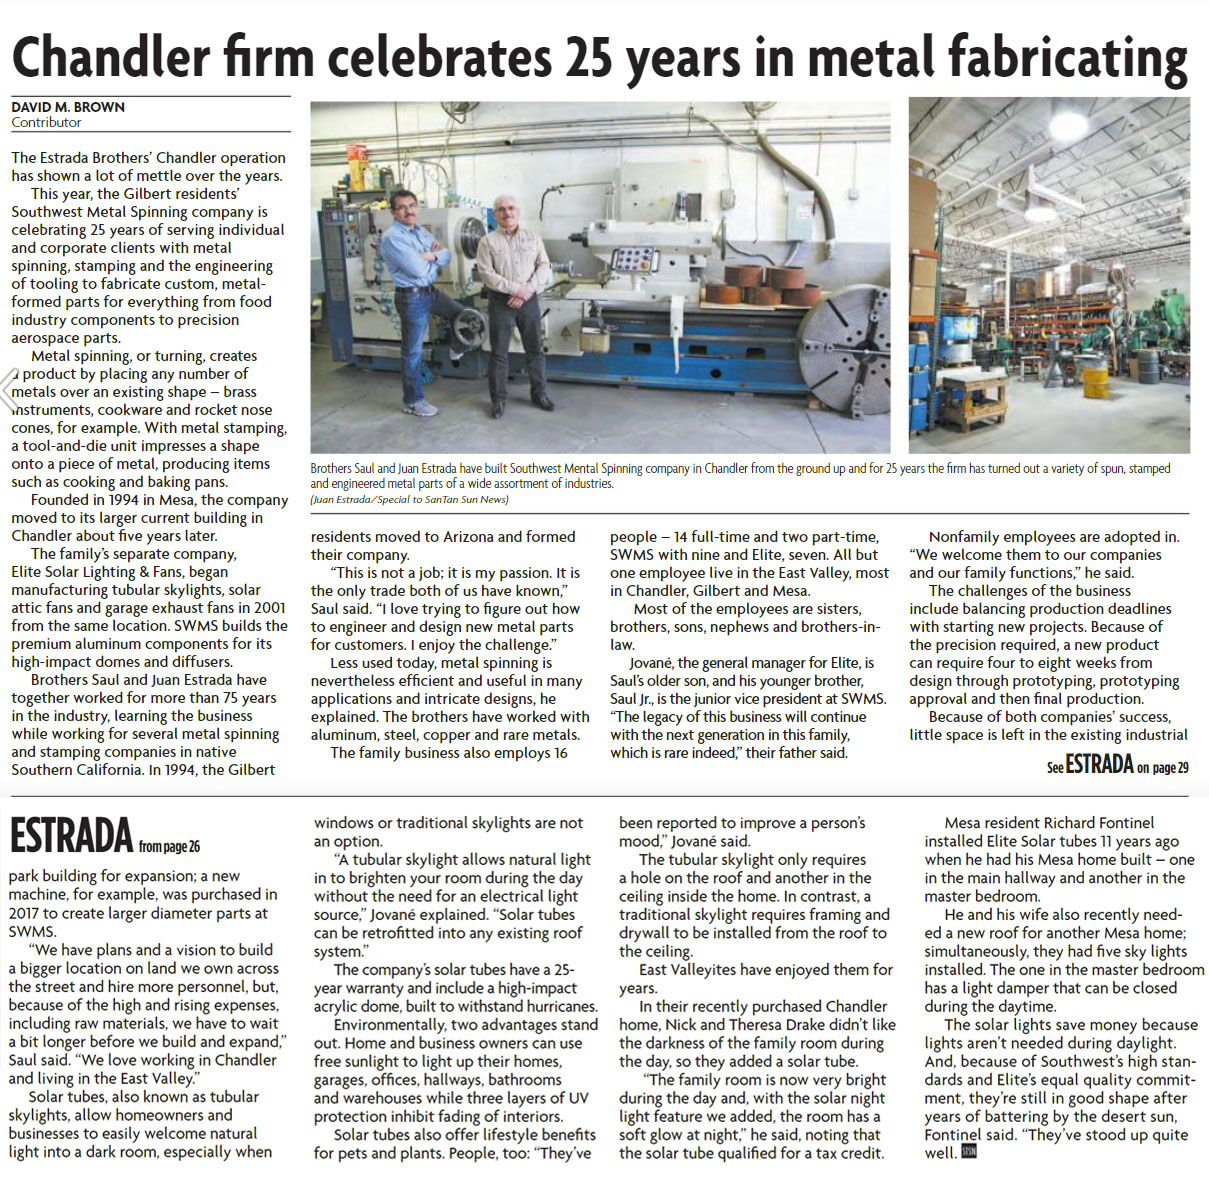 Chandler Firm Celebrates 25 Years in Metal Fabrication